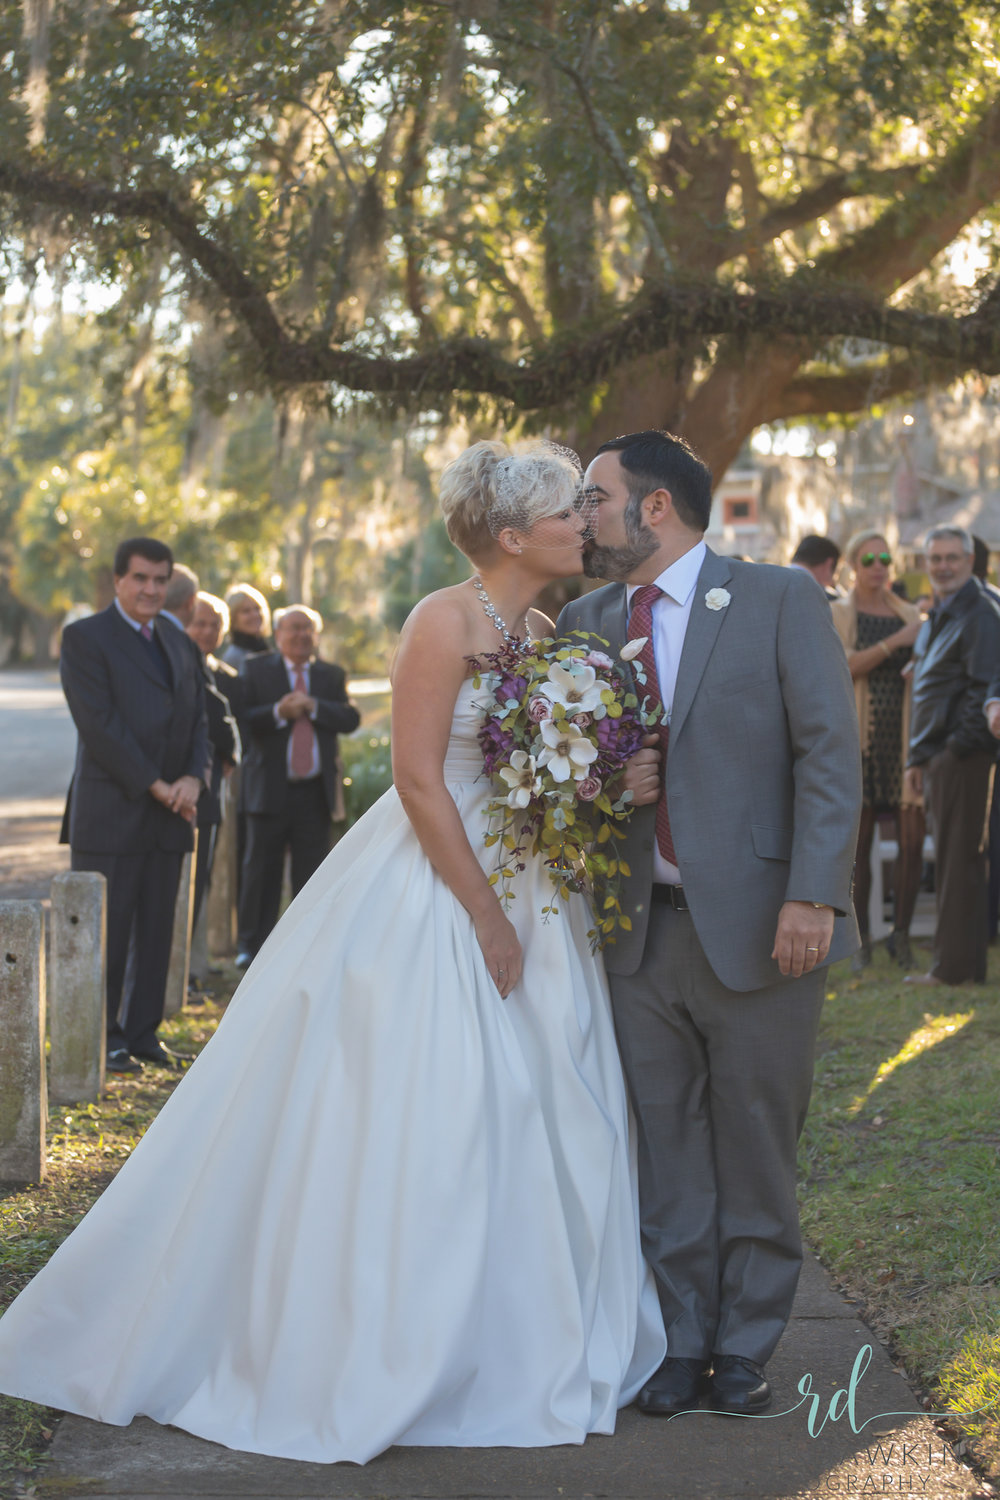 Tallahassee Photographer  Renee Dawkins Photography-27.jpg